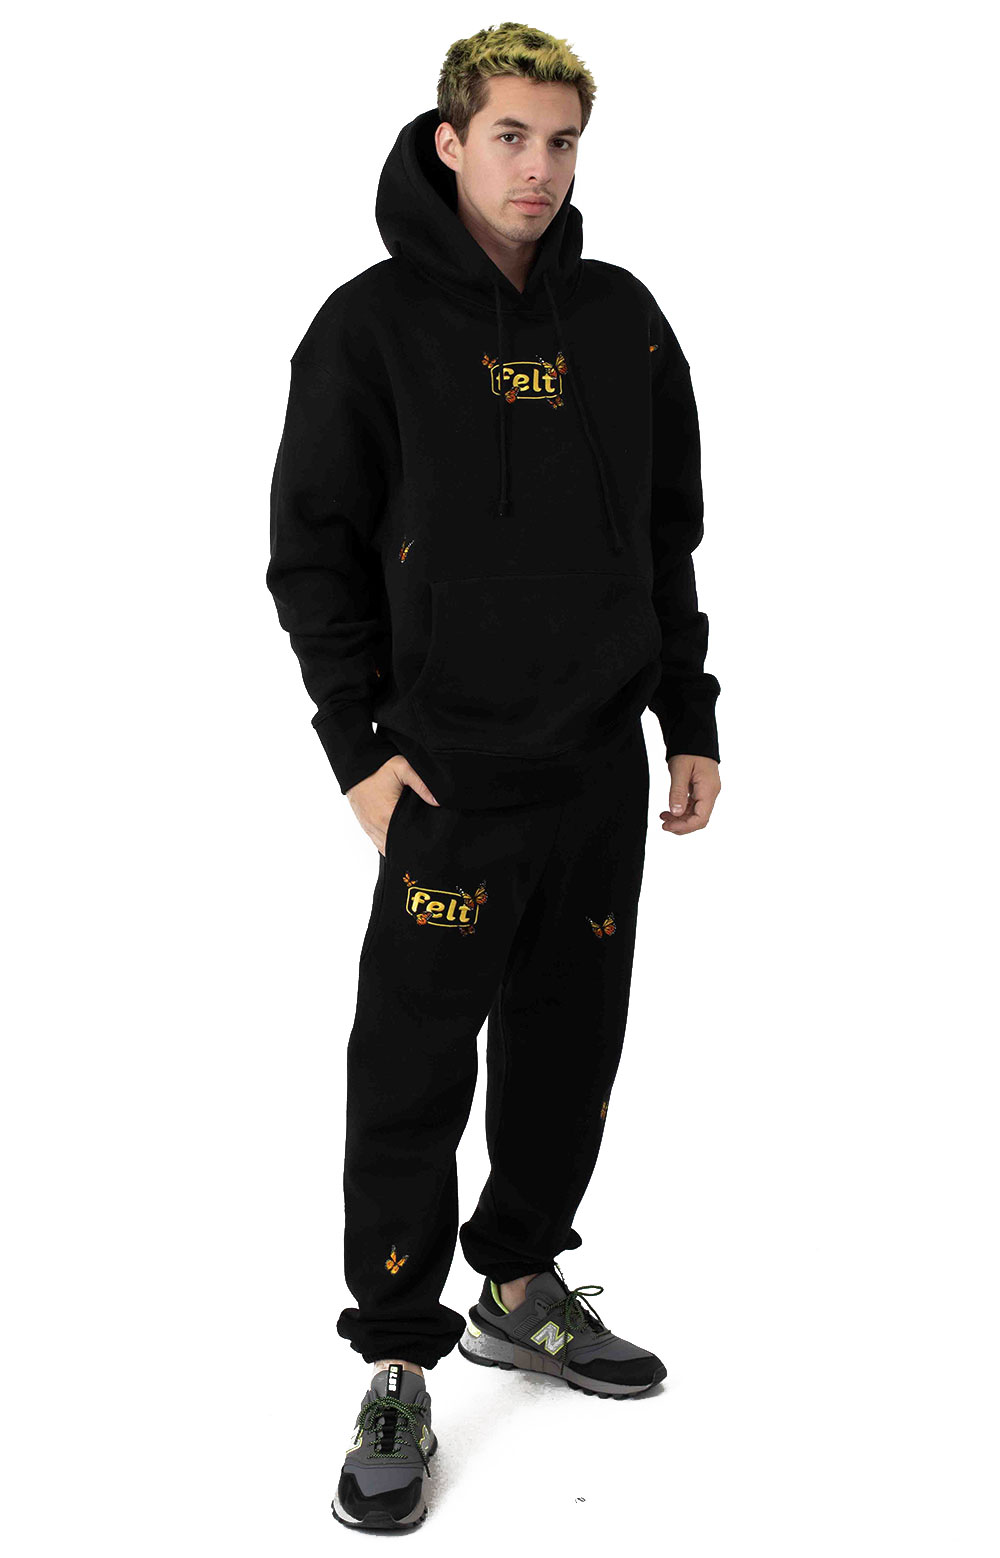 Butterfly Embroidered Sweatpants - Black 4